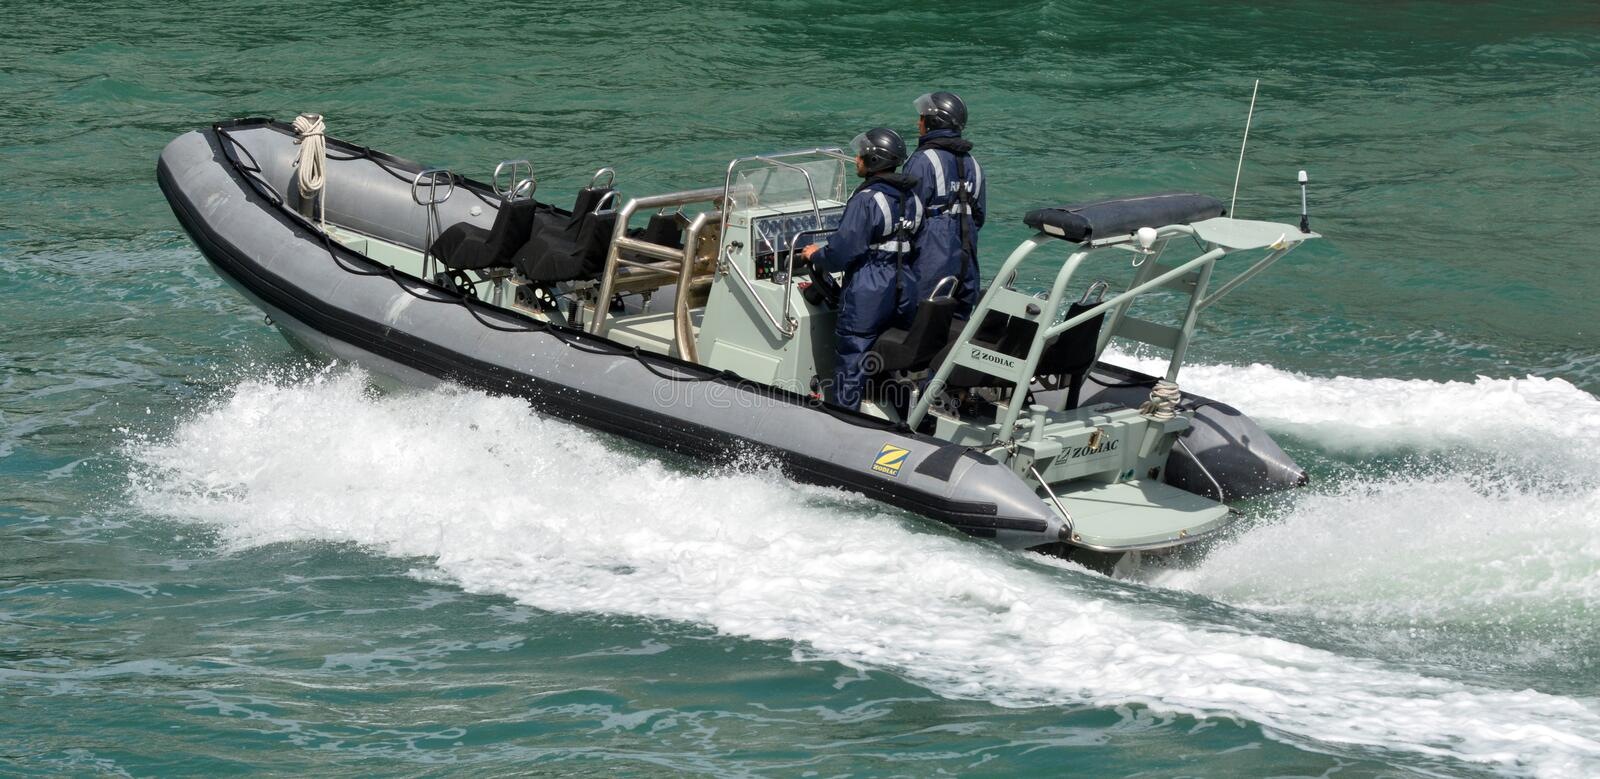 Royal New Zealand navy sailors ride a Zodiak Rigid-hulled inflatable boat in ports of Auckland stock photography